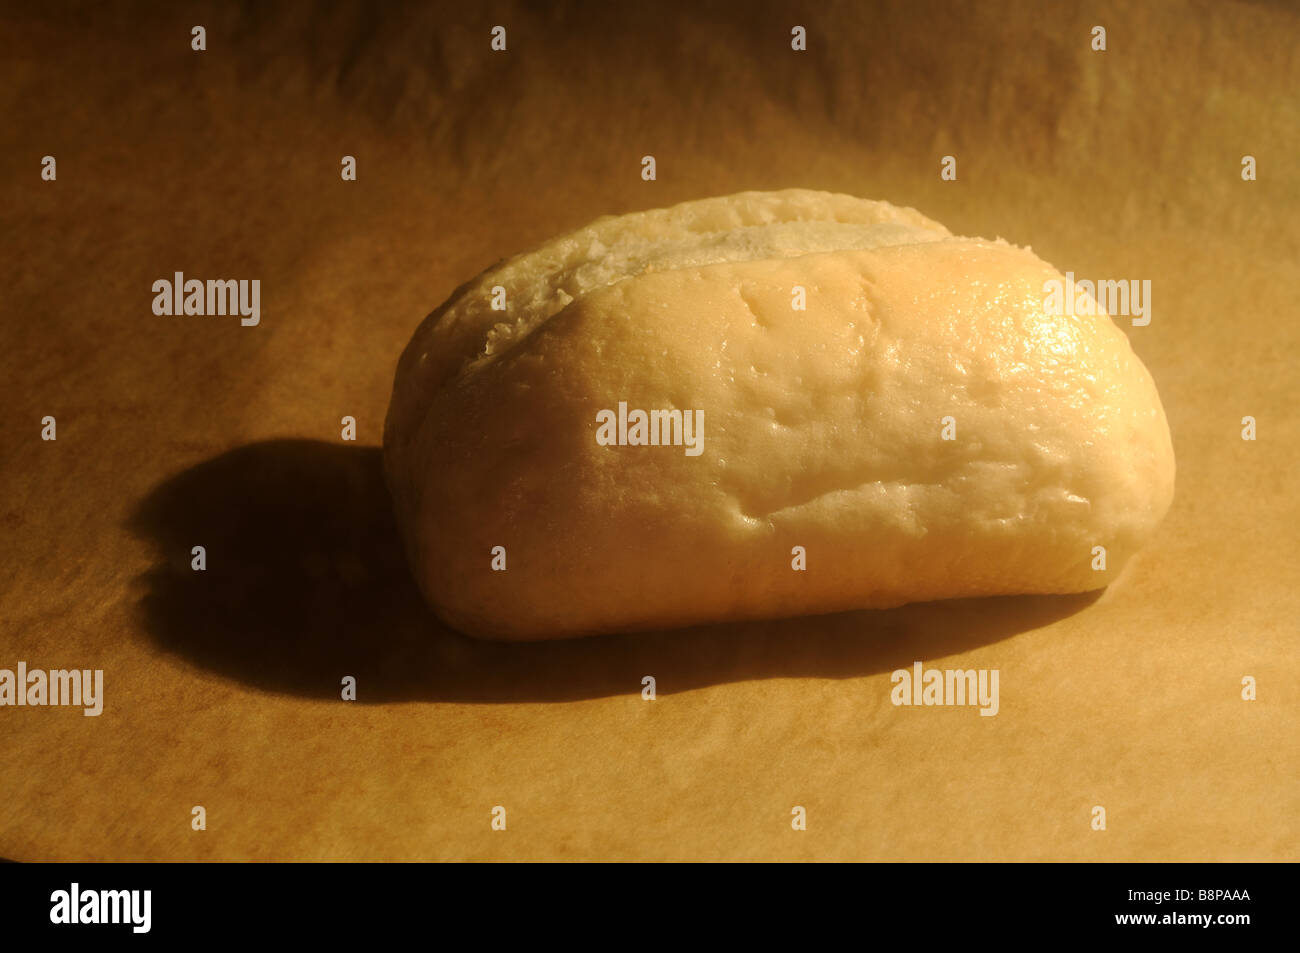 Bread Roll in the Oven Stock Photo: 22618690 - Alamy